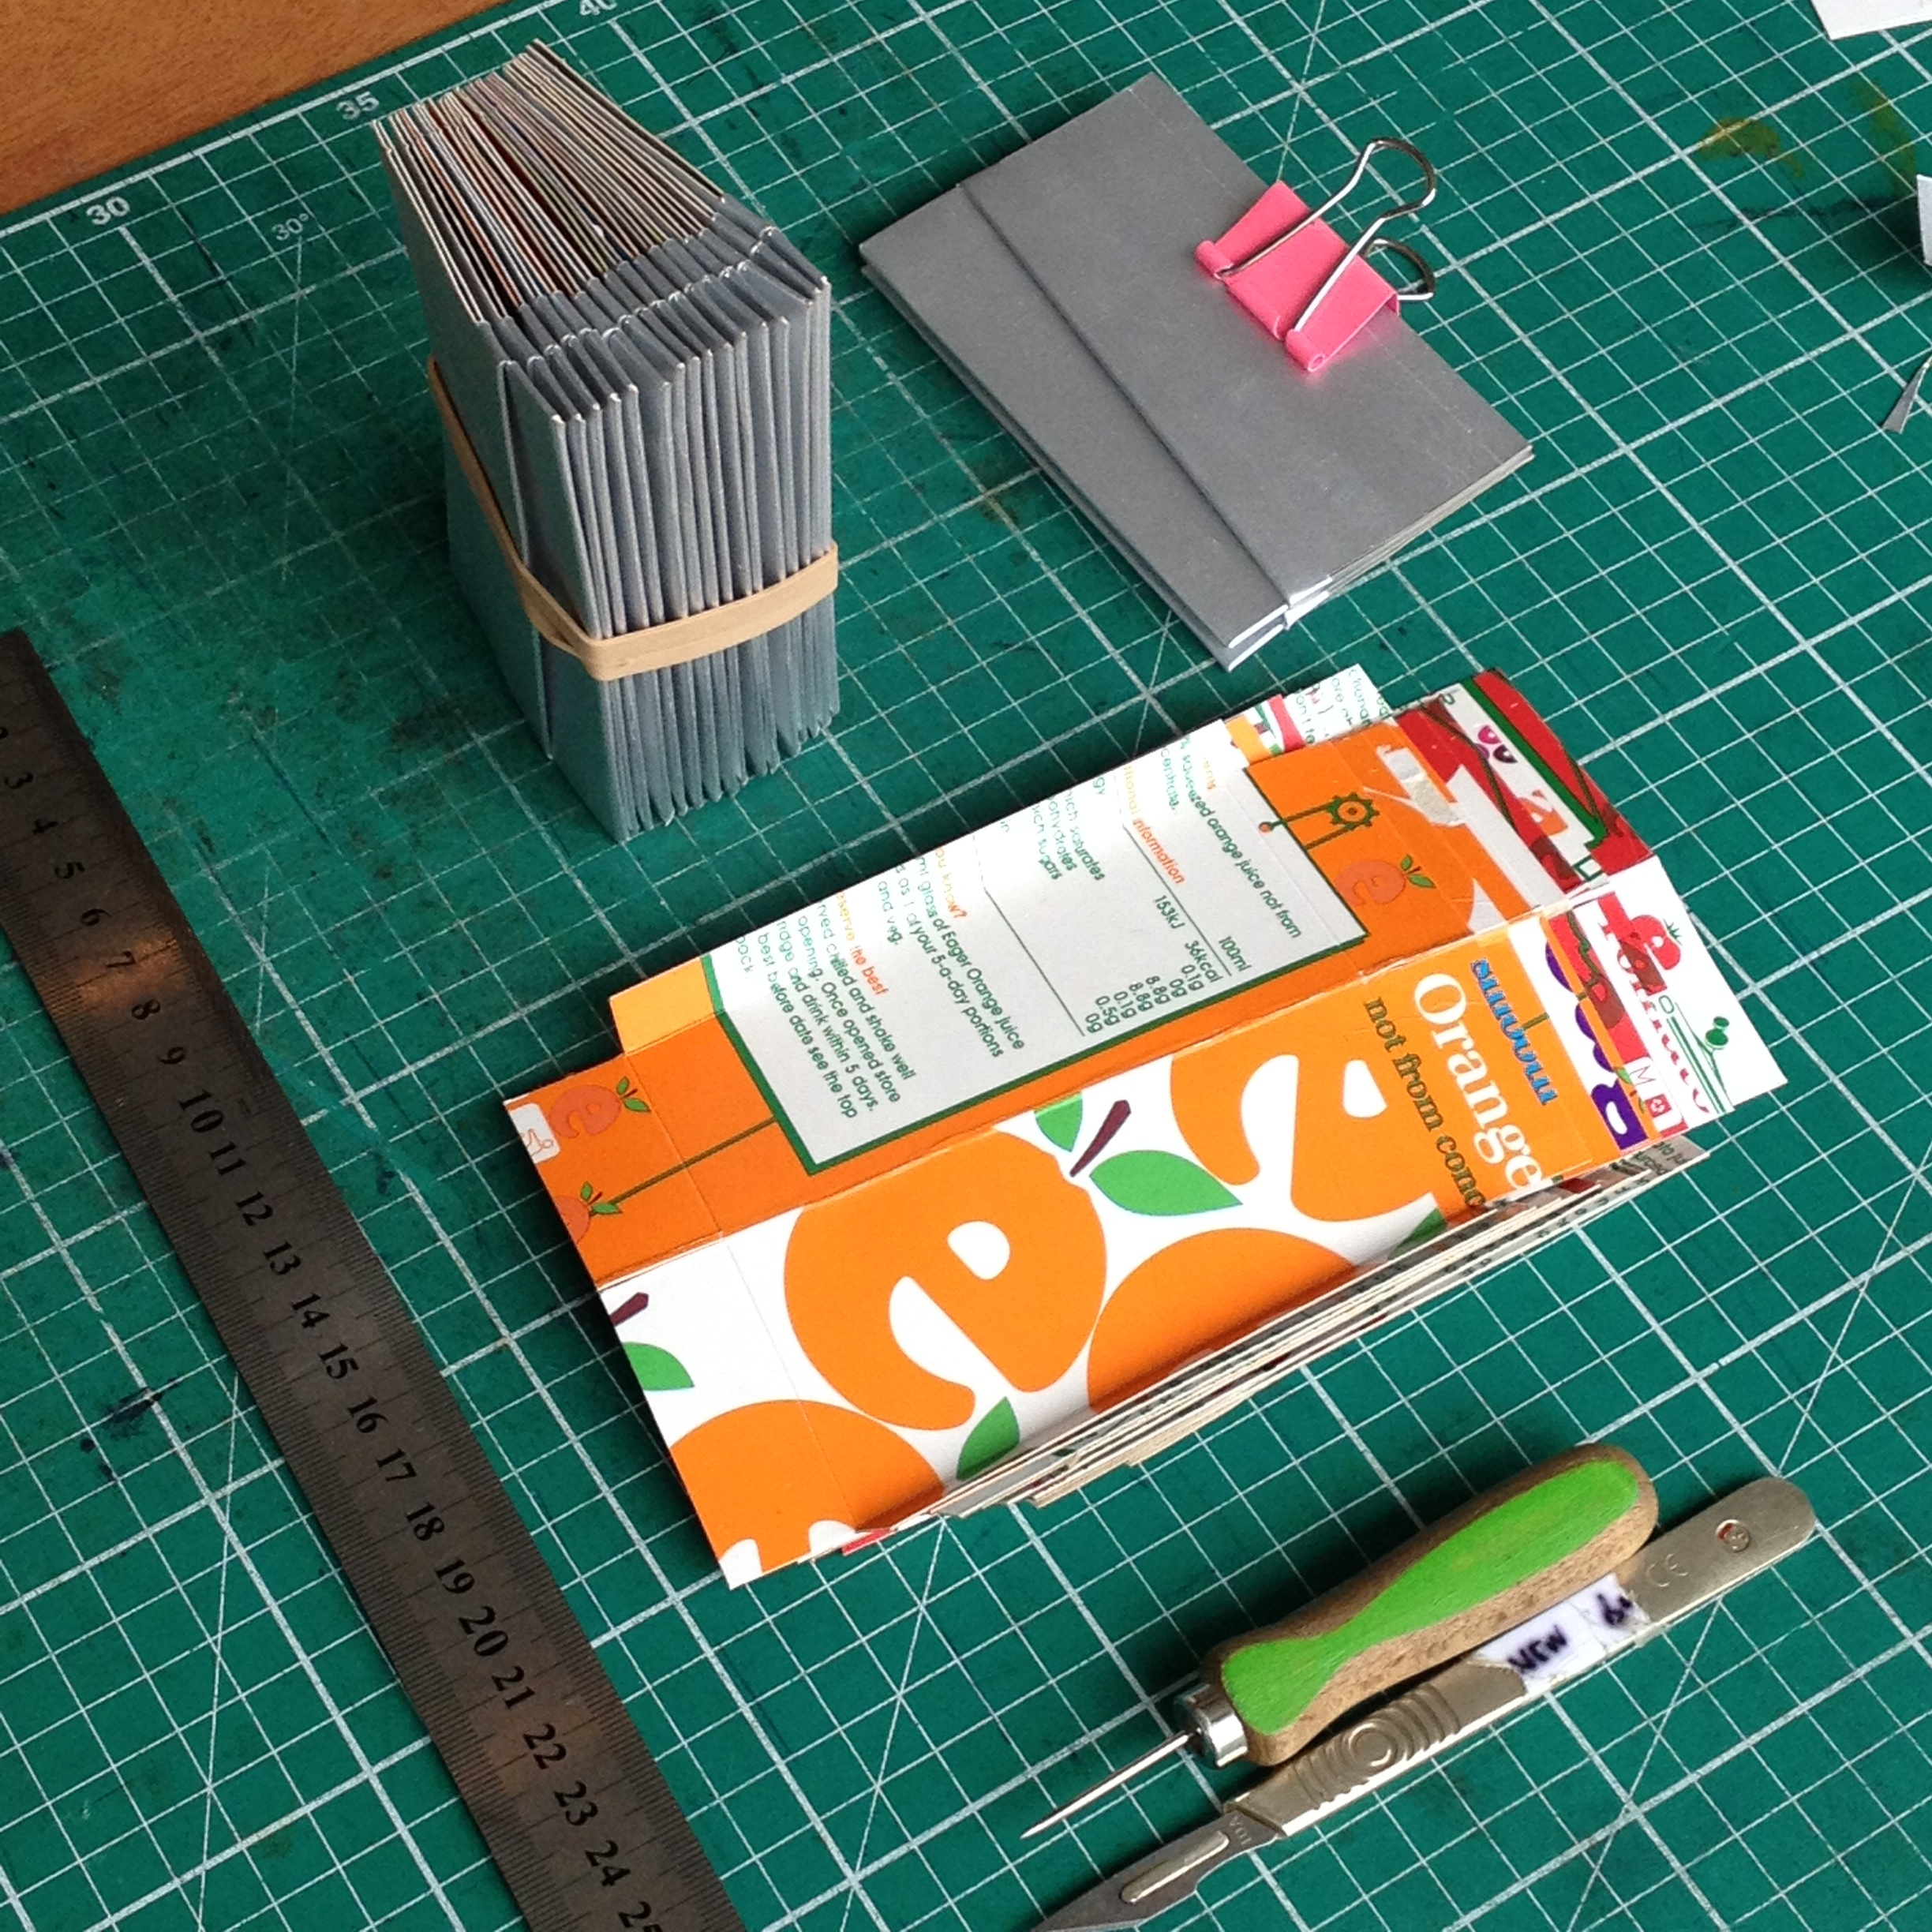 Components for the card holders scored, cut, folded and assembled ready for machine stitching.